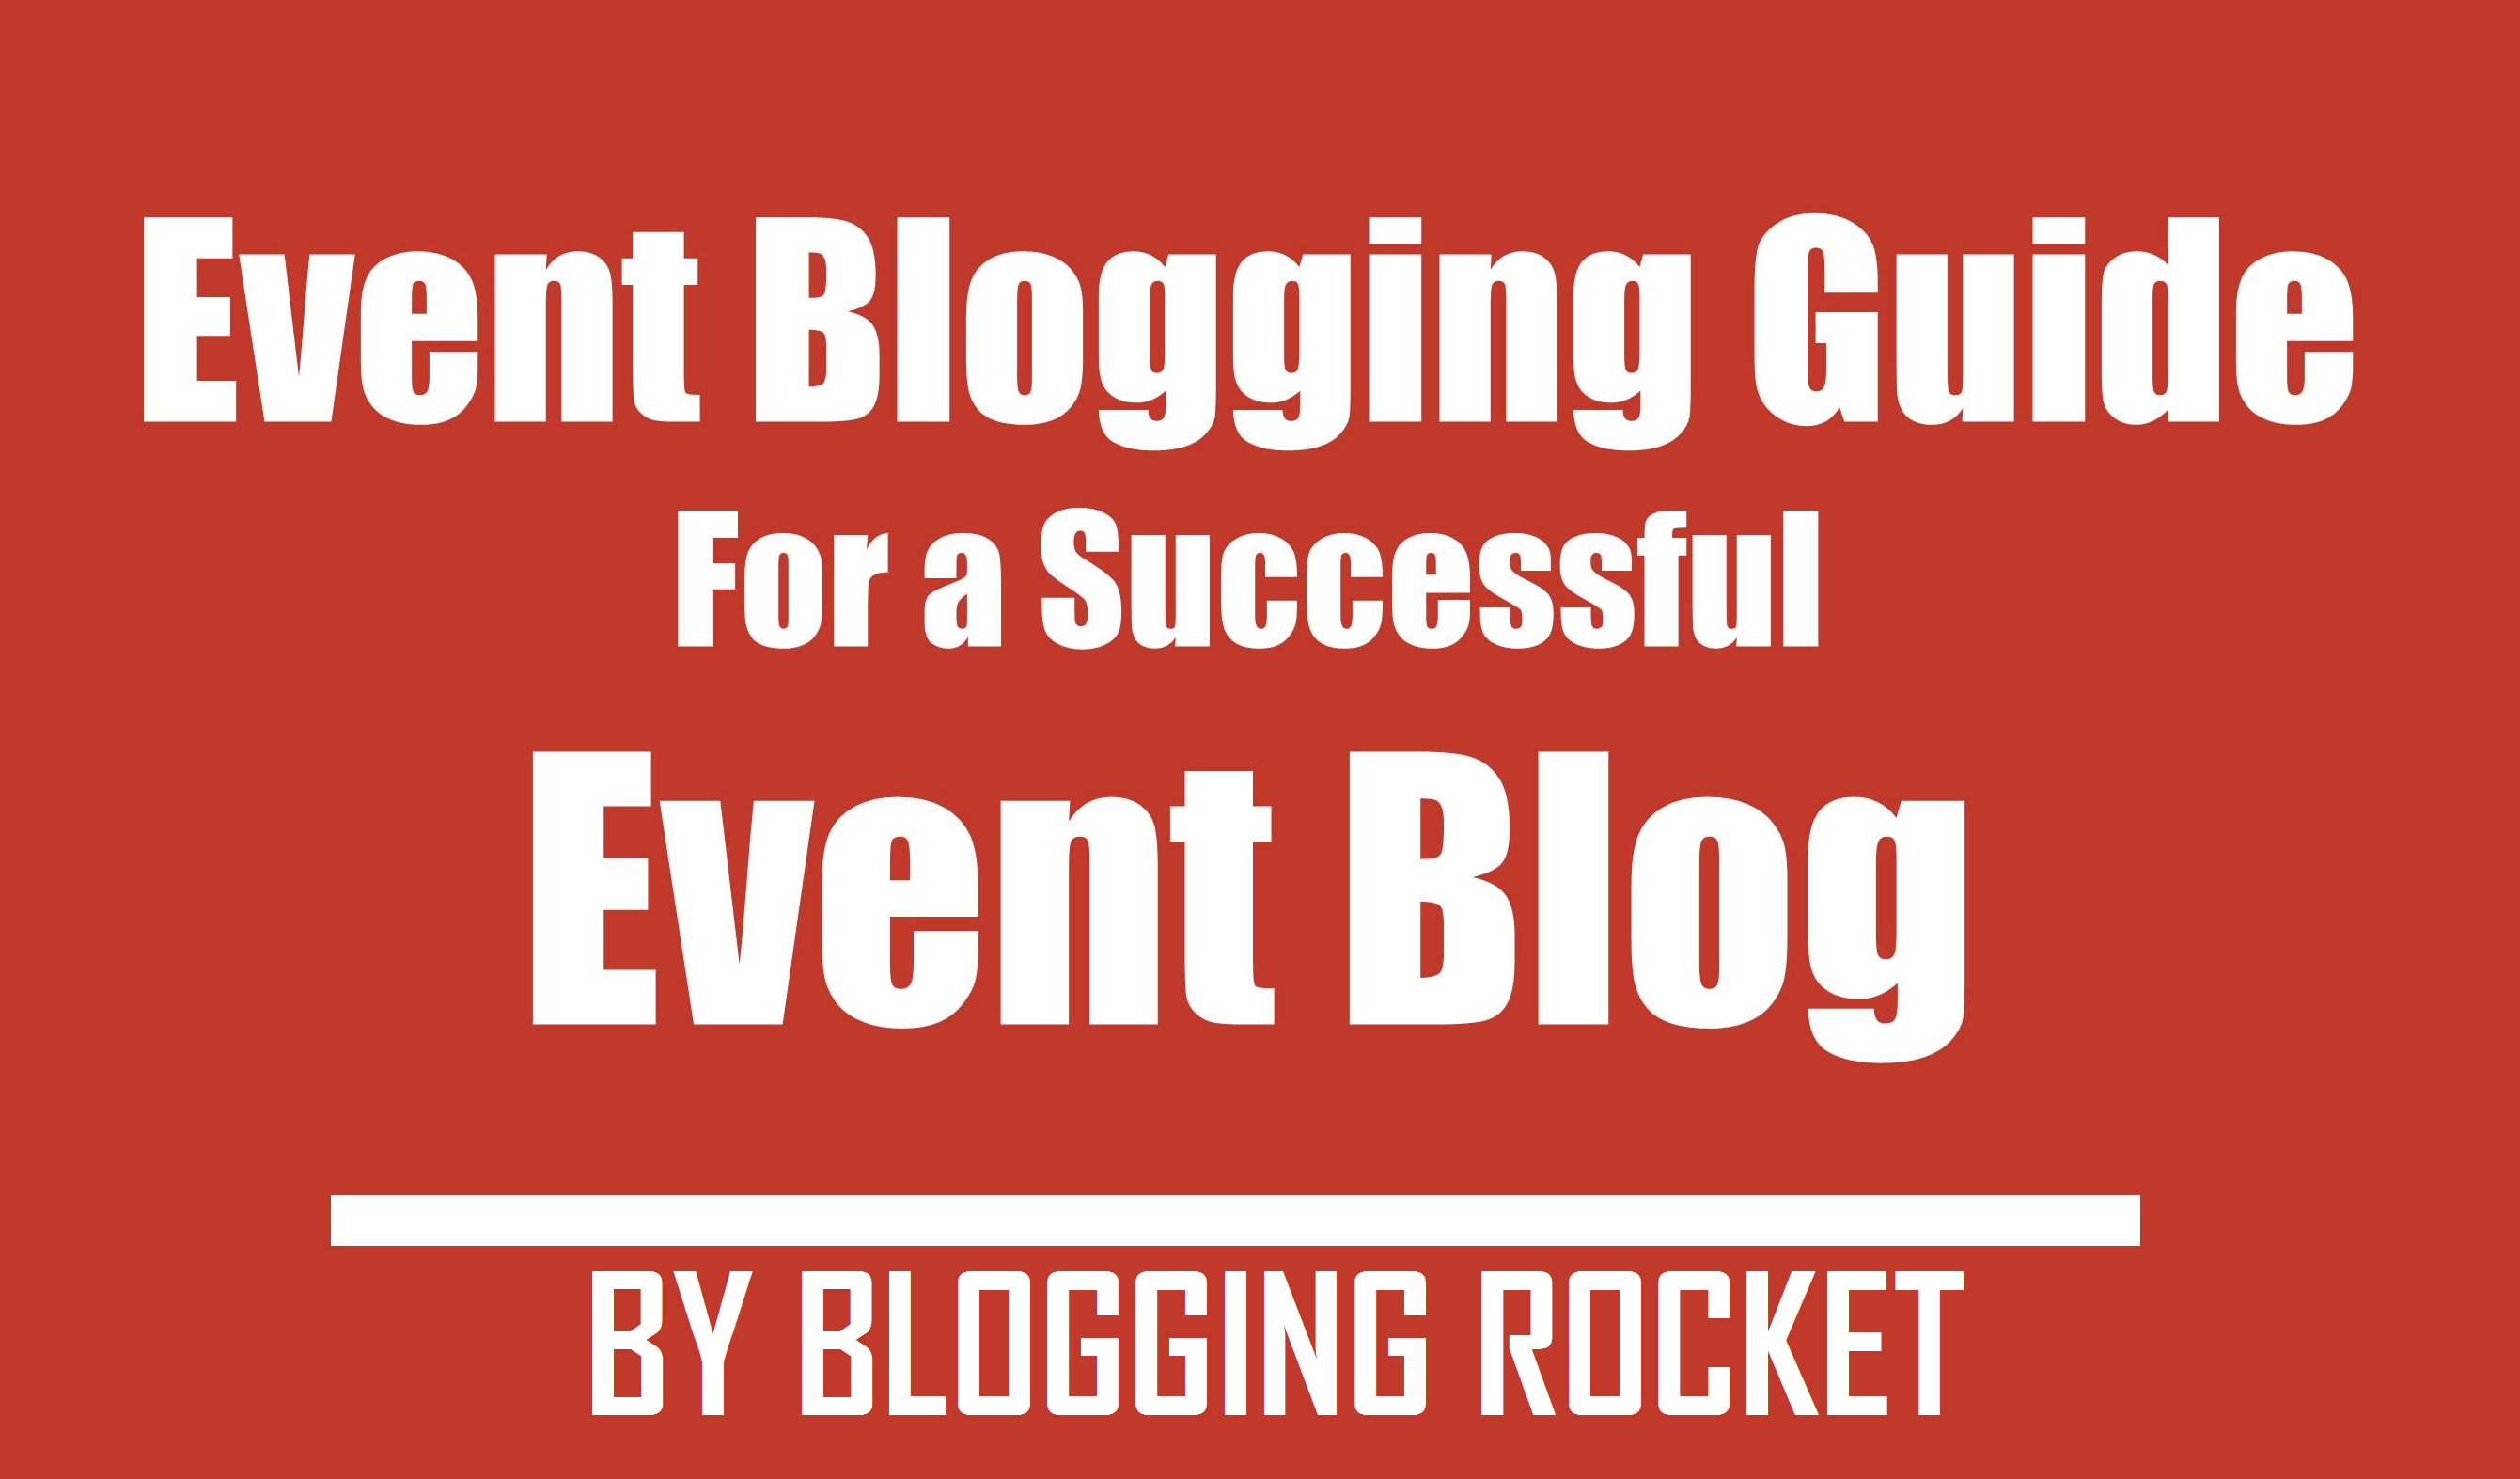 Event Blogging Guide